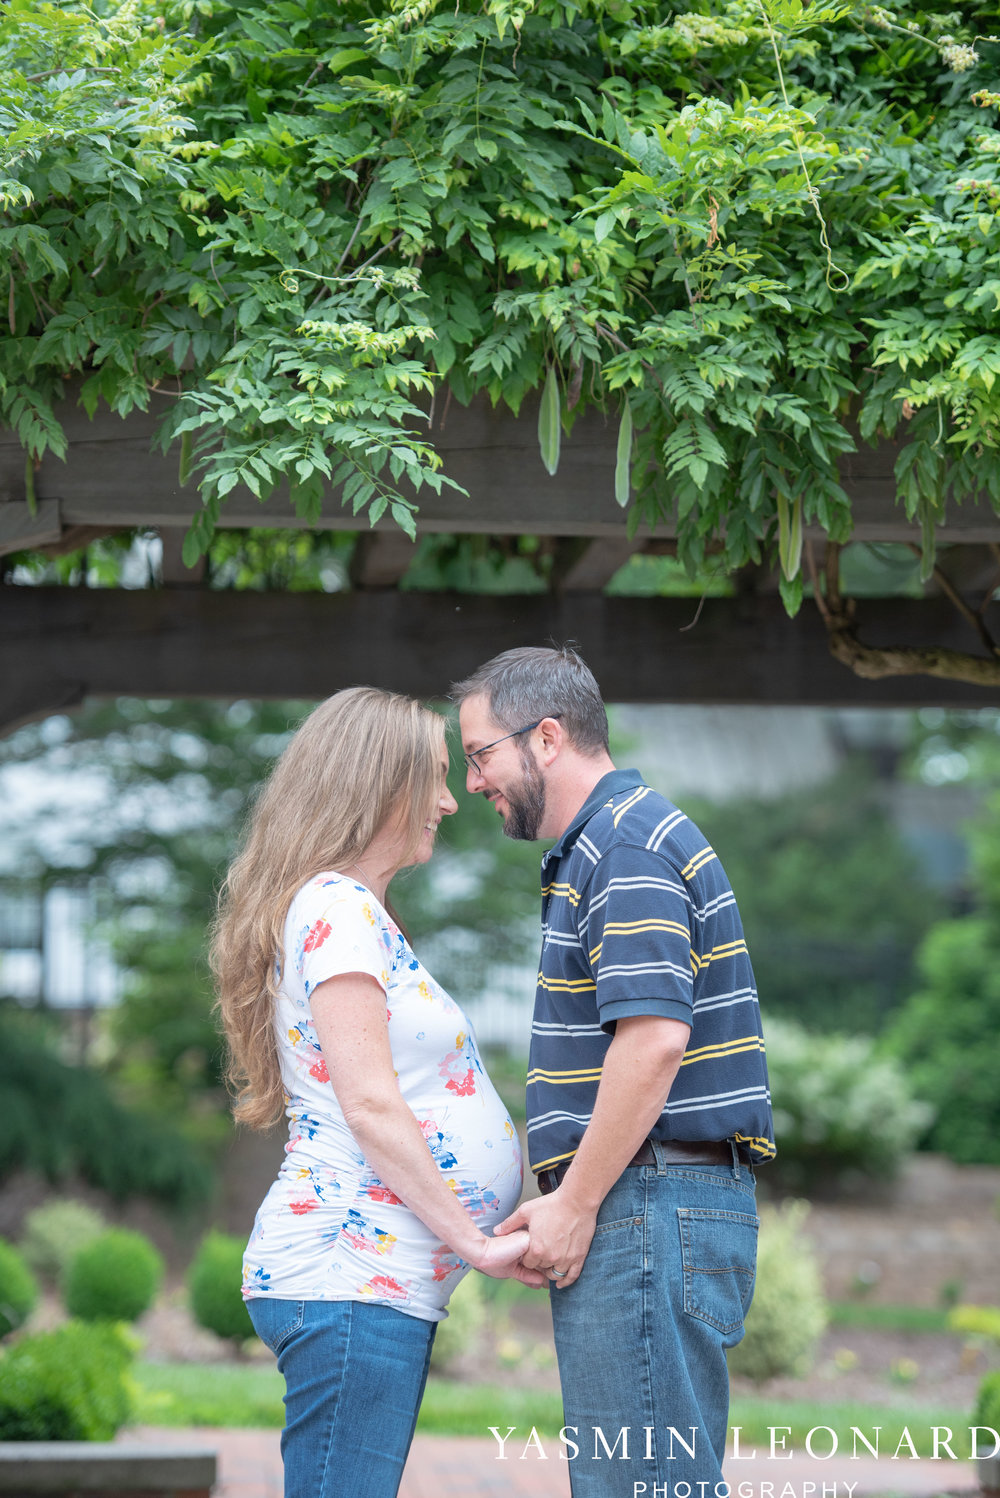 Tanglewood NC - Tanglewood Maternity Session - Bermuda Run - Maternity Session - NC Photographer - Tanglewood Park - Yasmin Leonard Photography-13.jpg